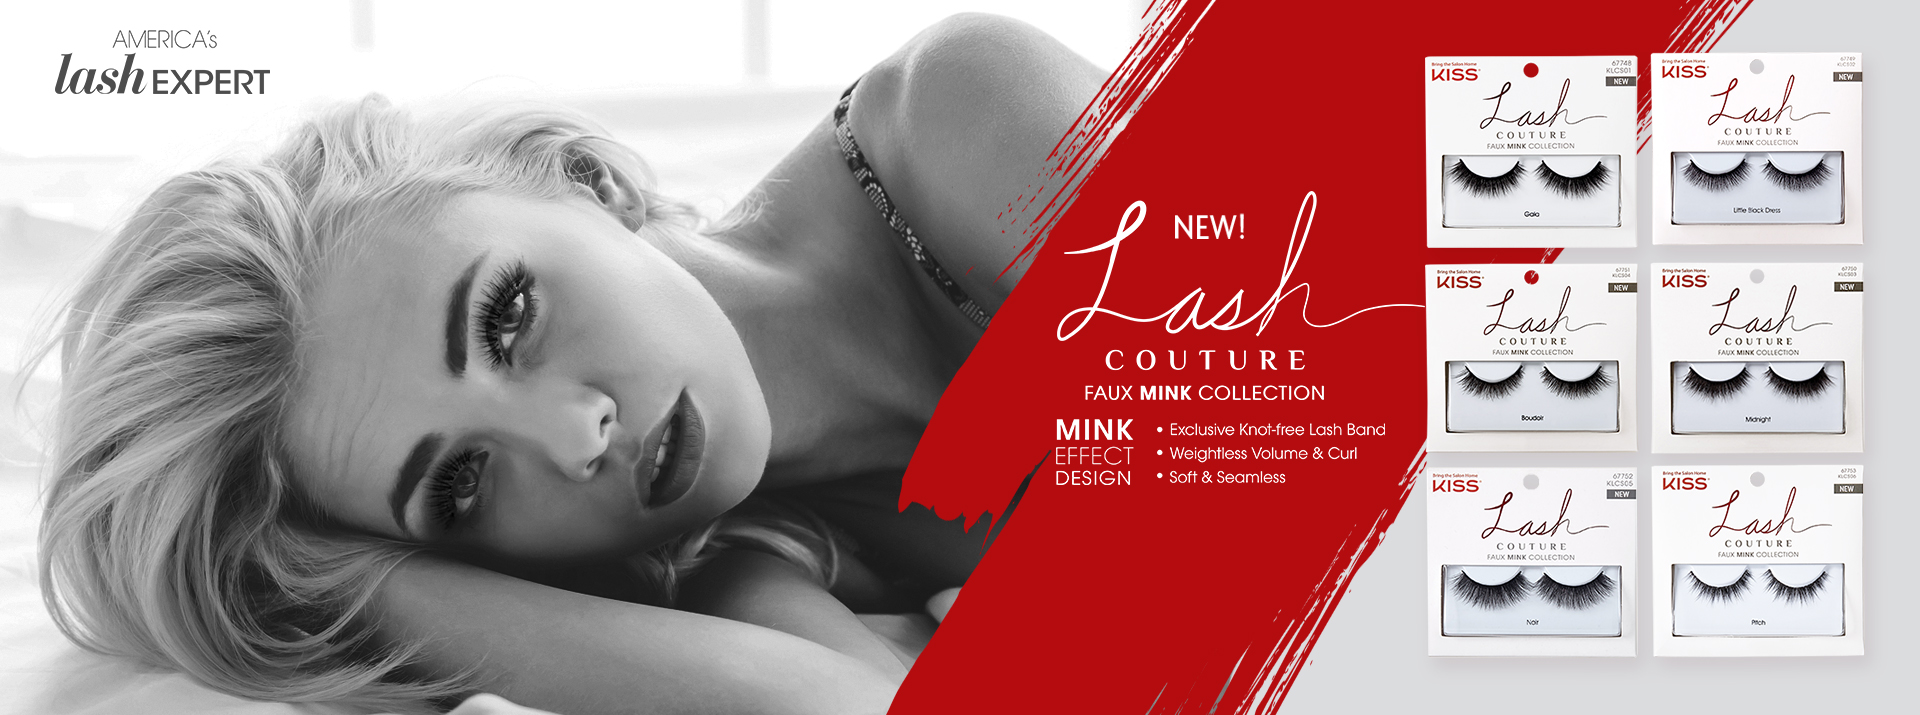 Kiss Lash Couture Faux Mink Collection